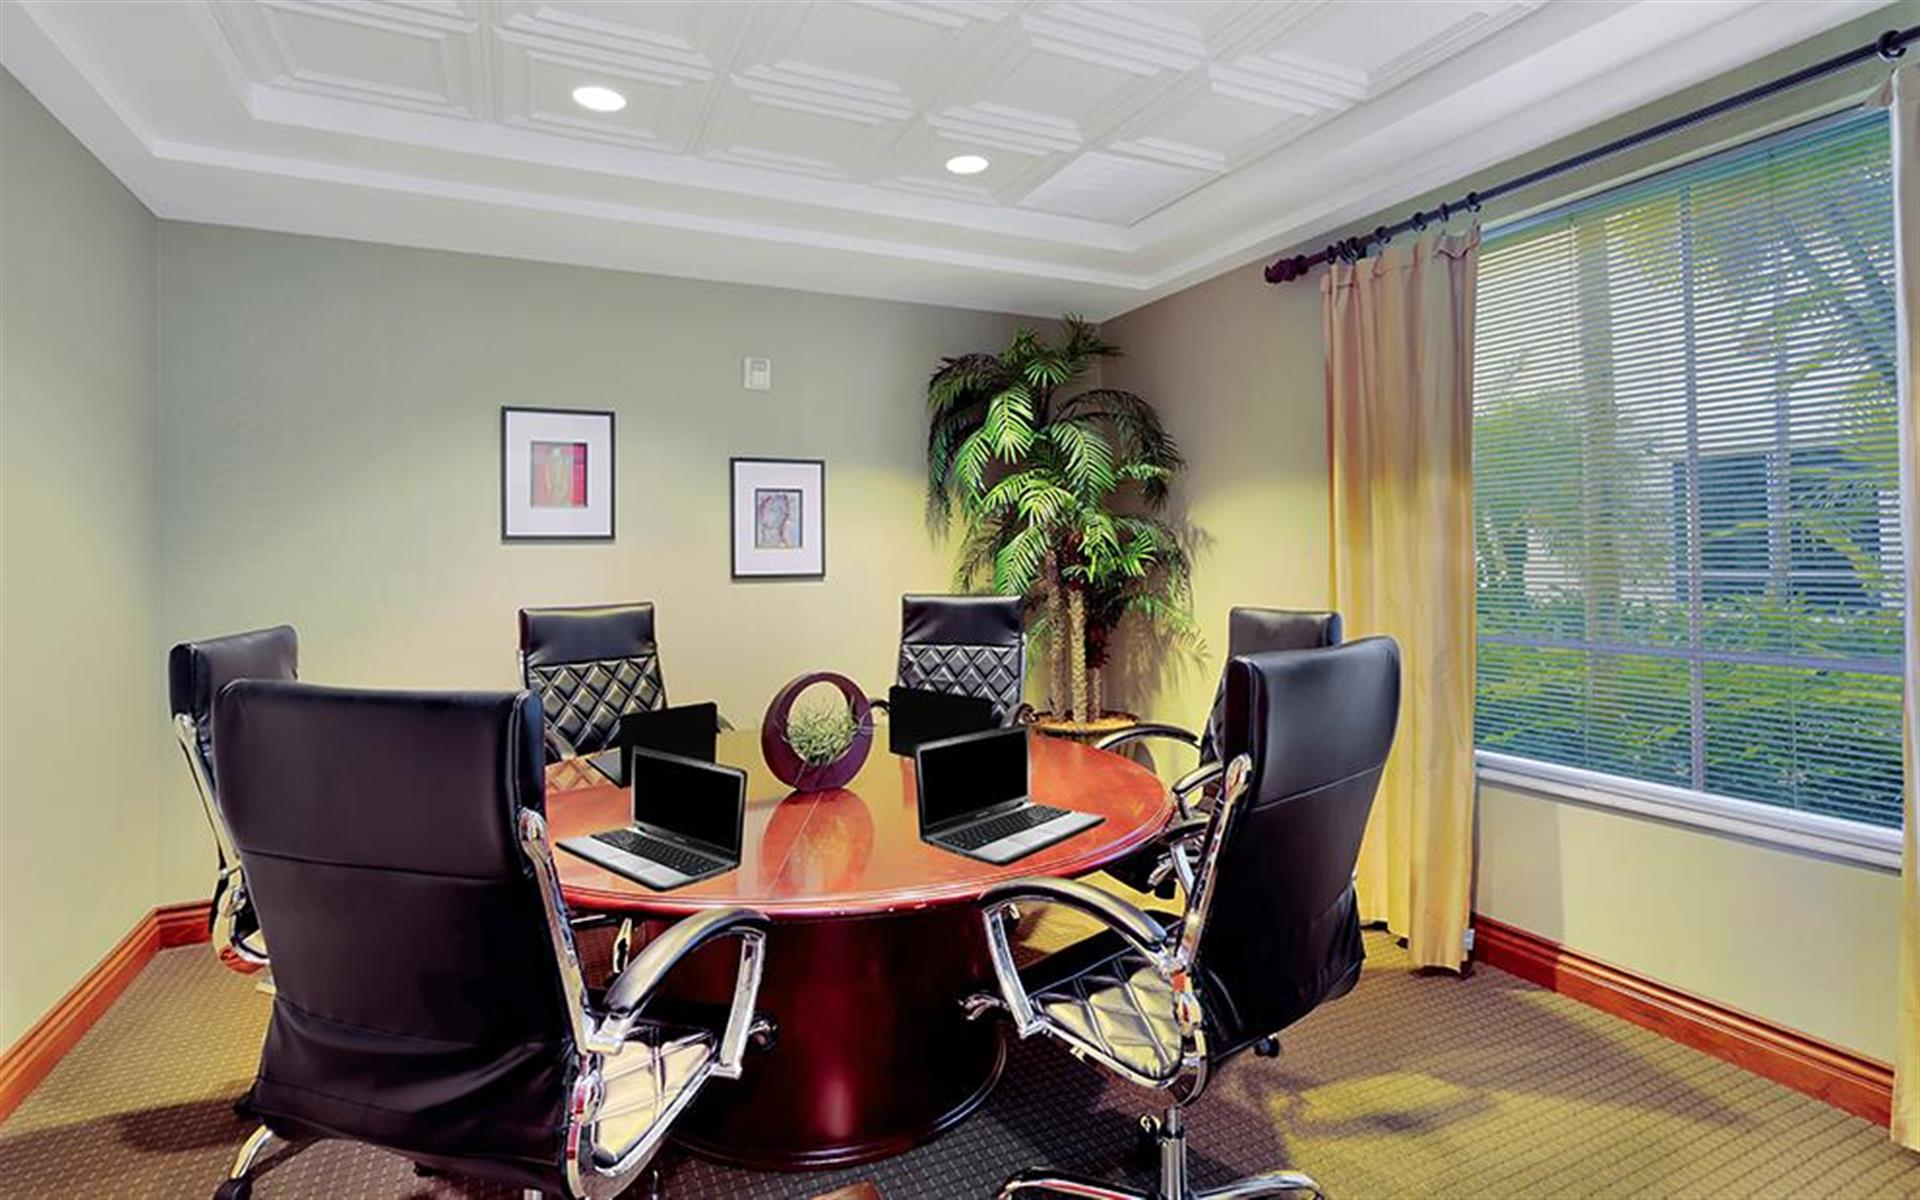 Premier executive center naples small conference room 1st floor seats 6